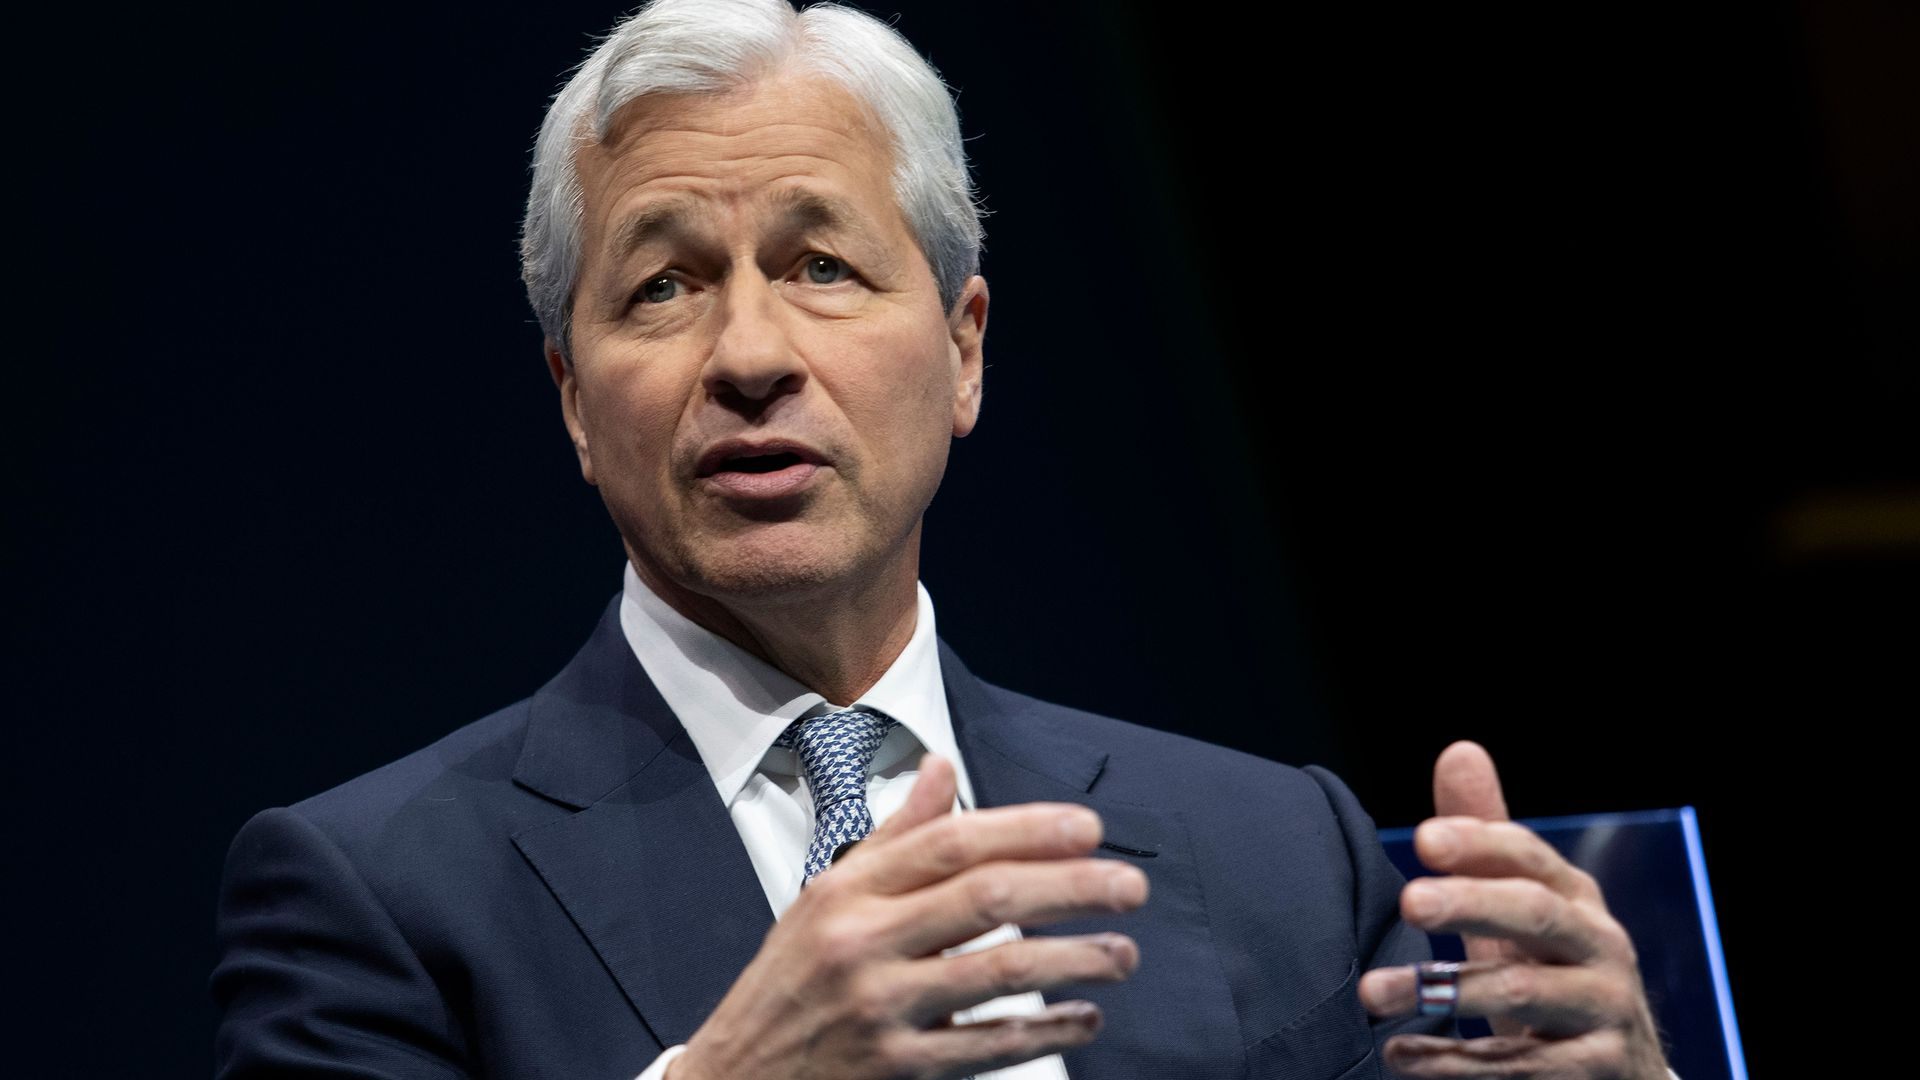 JPMorgan Chase & Co. CEO Jamie Dimon speaks during the Business Roundtable CEO Innovation Summit in Washington, DC on December 6, 2018